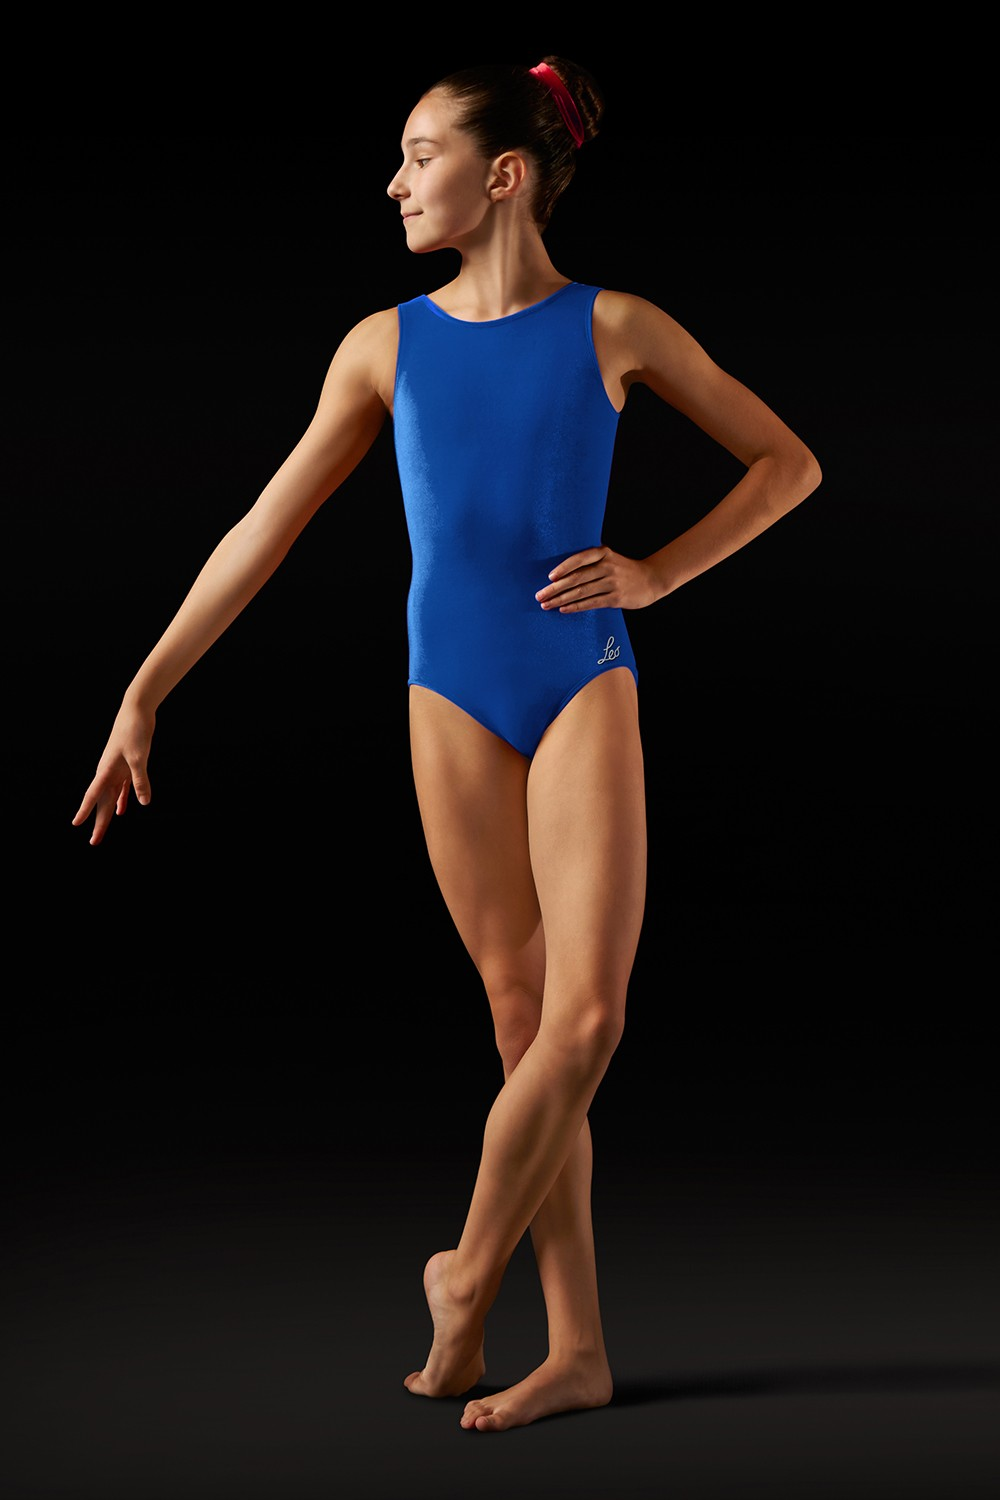 Velvet Tank Leotard   Women's Gymnastics Leotards